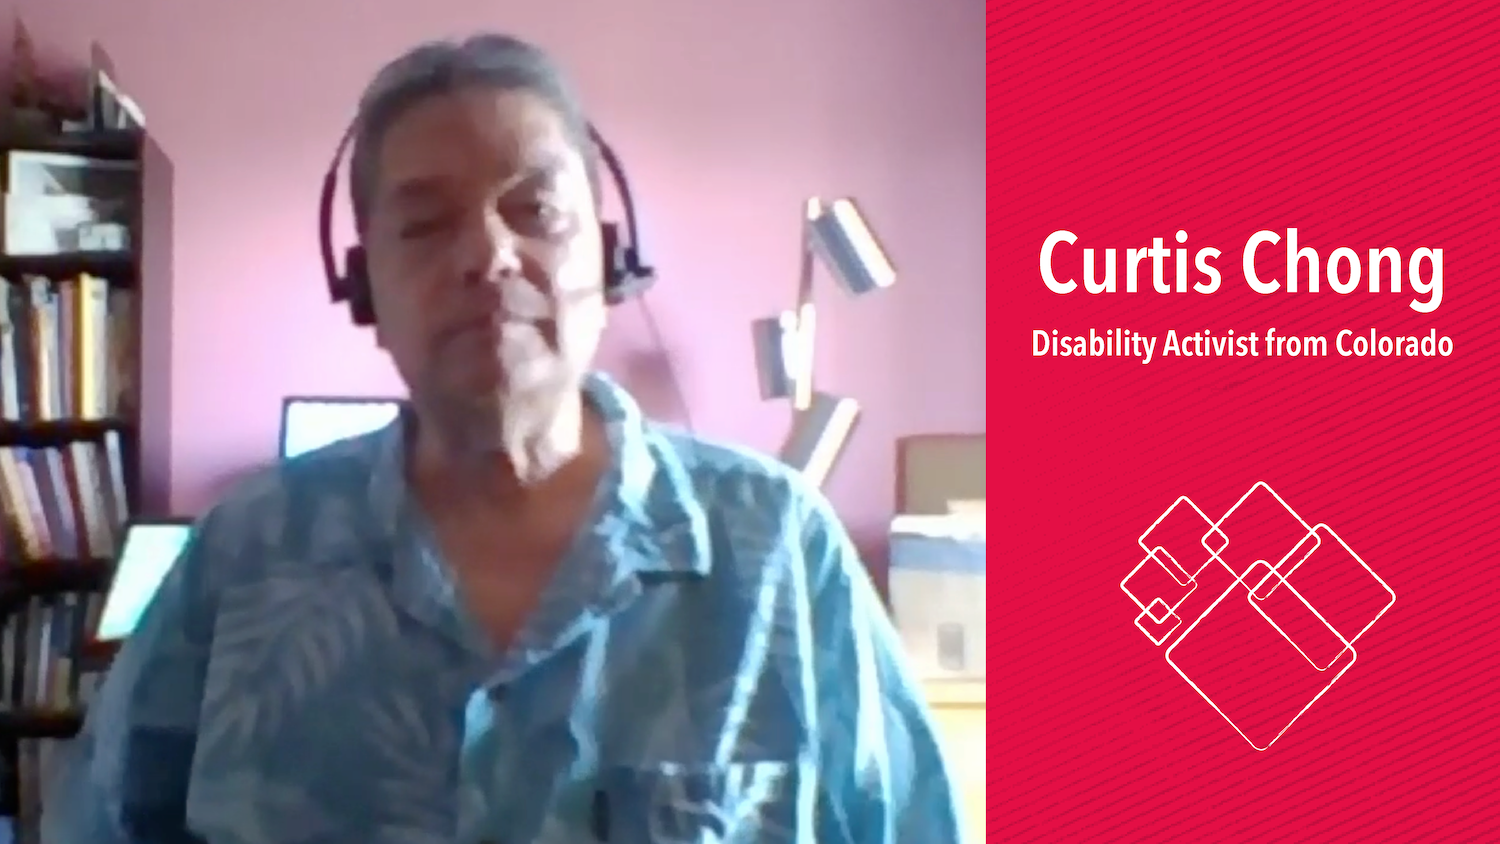 Curtis, an Asian American, looks to the web camera and wears a head set